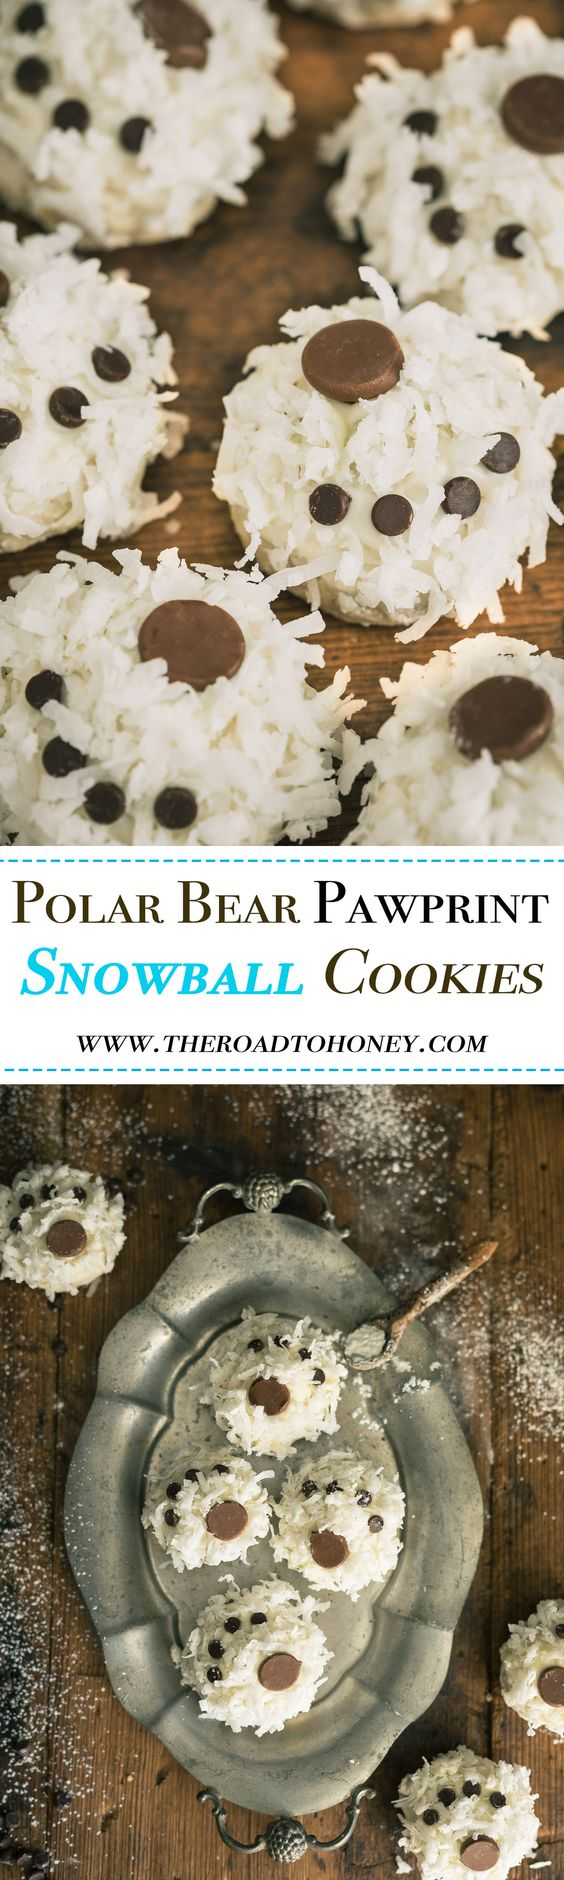 Polar Bear Pawprint SNOWBALL COOKIES -  are made of melt-in-your mouth nutty, buttery cookies that are lightly flavored with a hint of peppermint, then dipped in a creamy, white chocolate, coated with coconut & decorated with chocolate chips.  Perfect for holidays, winter themed parties, birthday parties, and snow days.  Click for RECIPE.